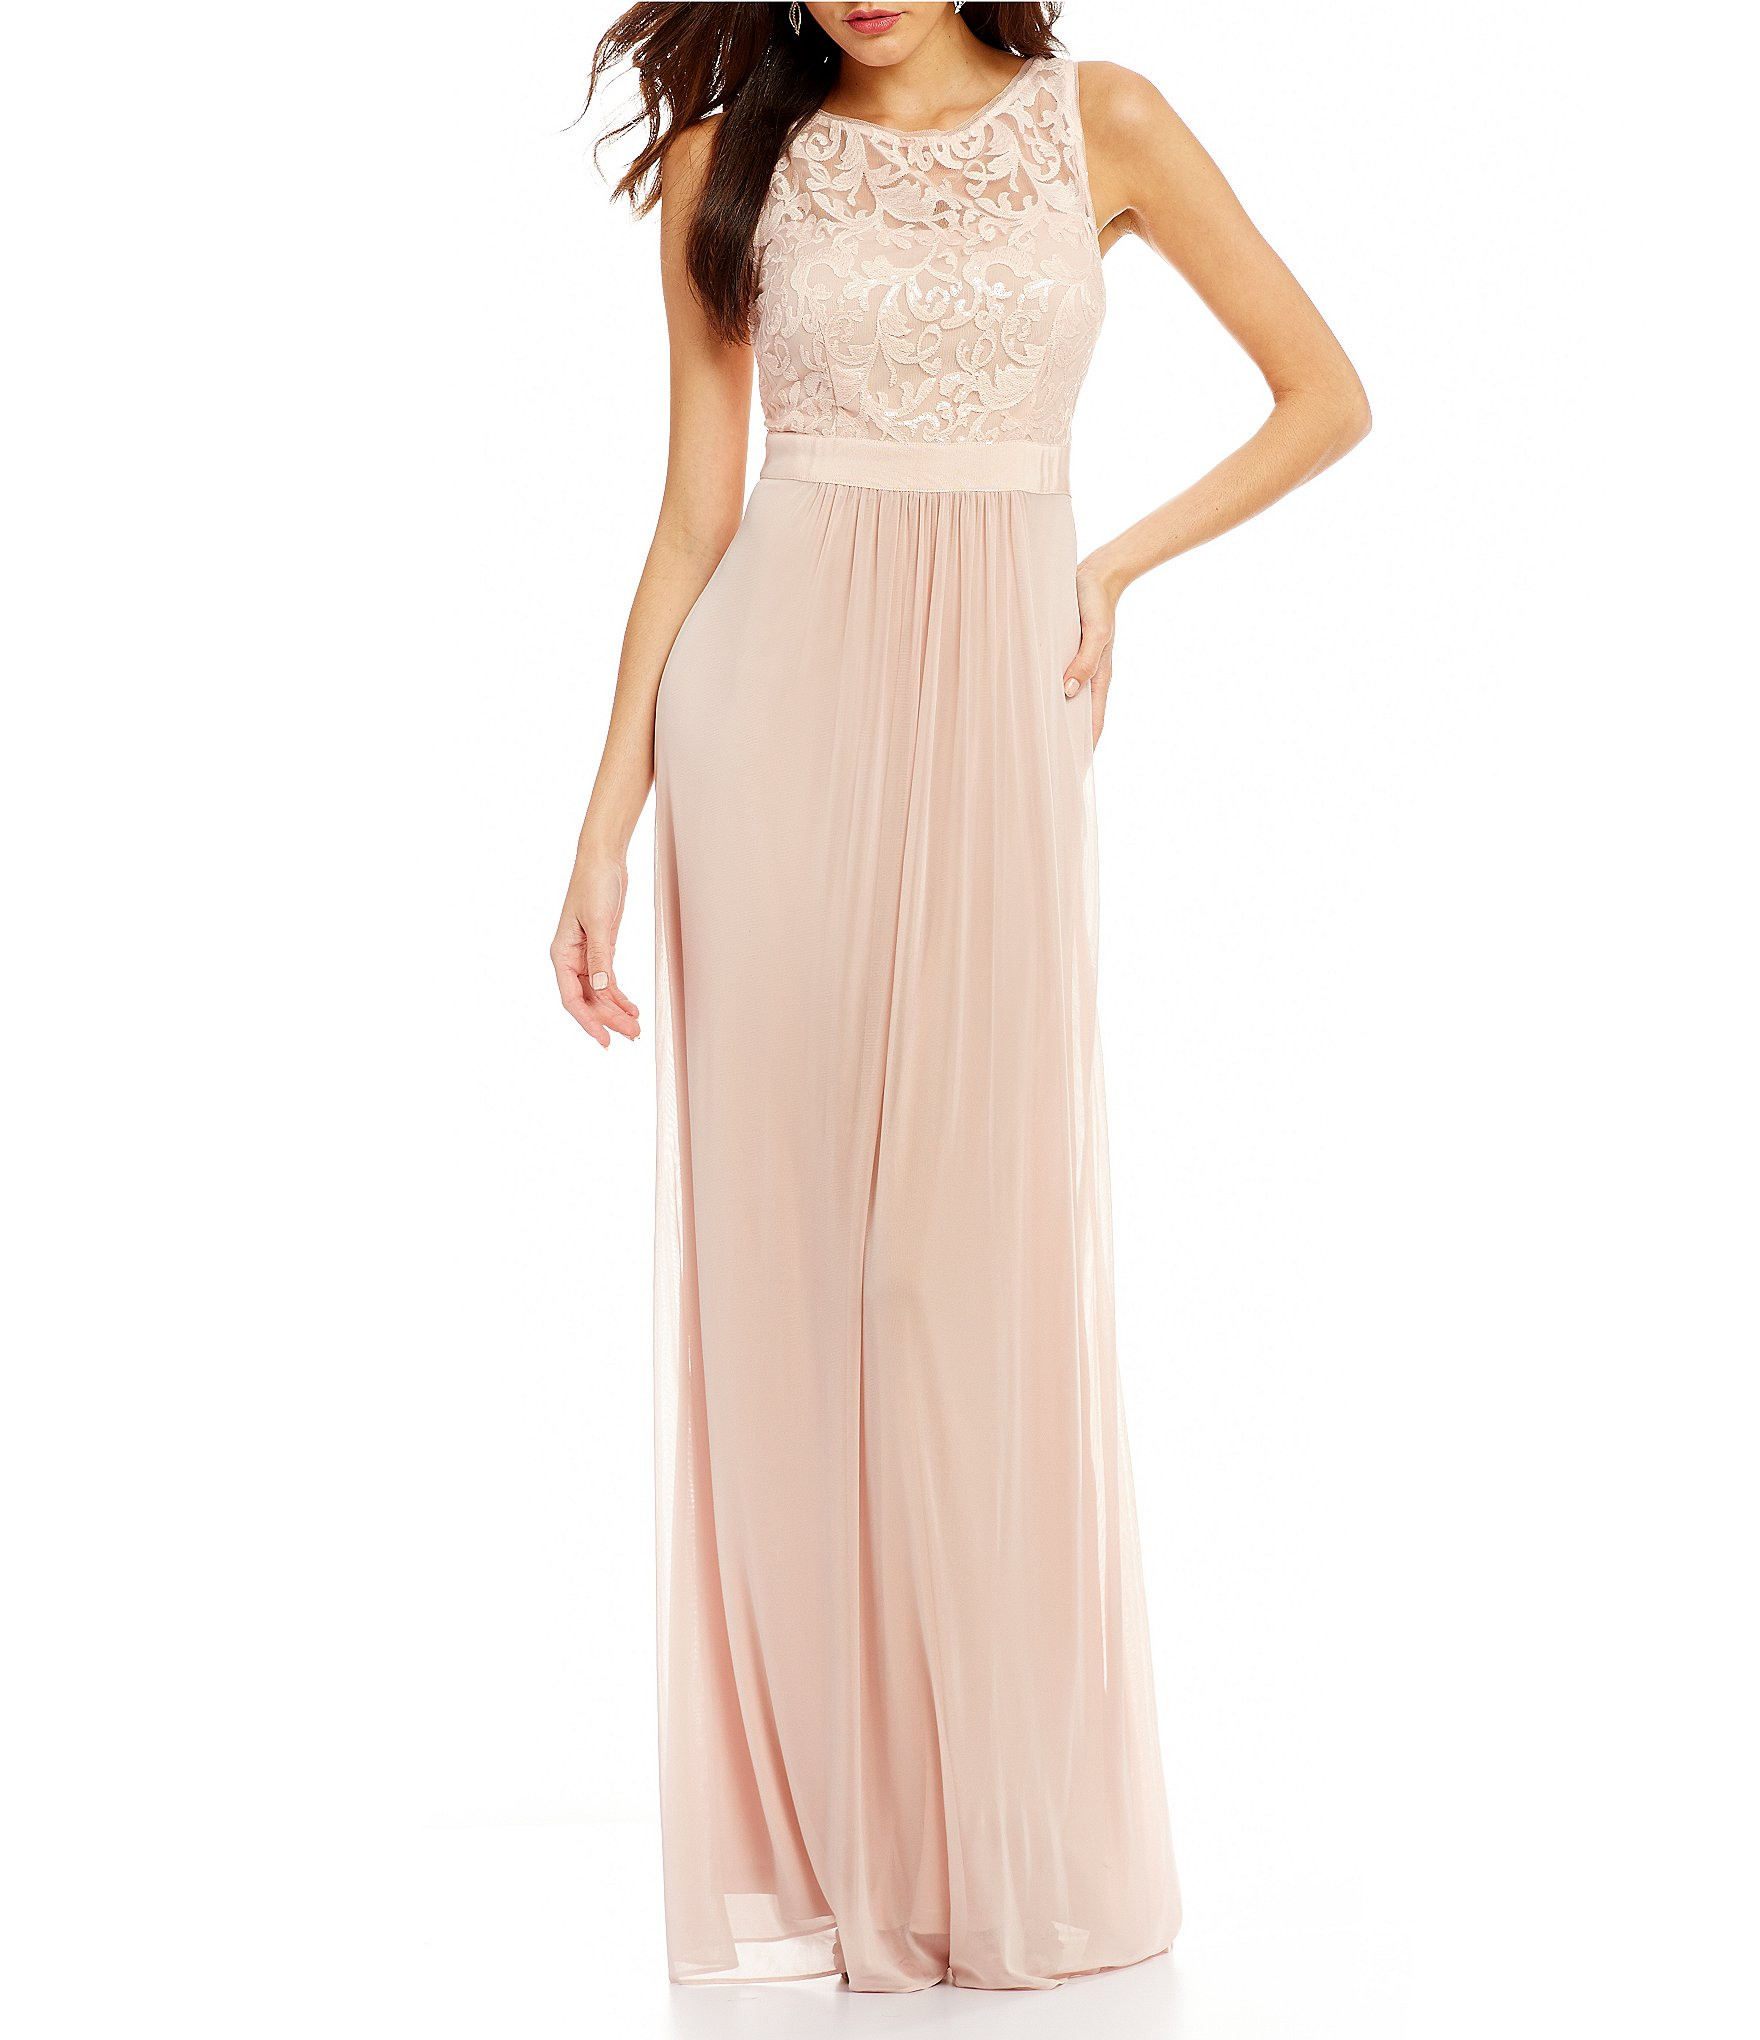 Women\'s Clothing | Dresses | Dillards.com